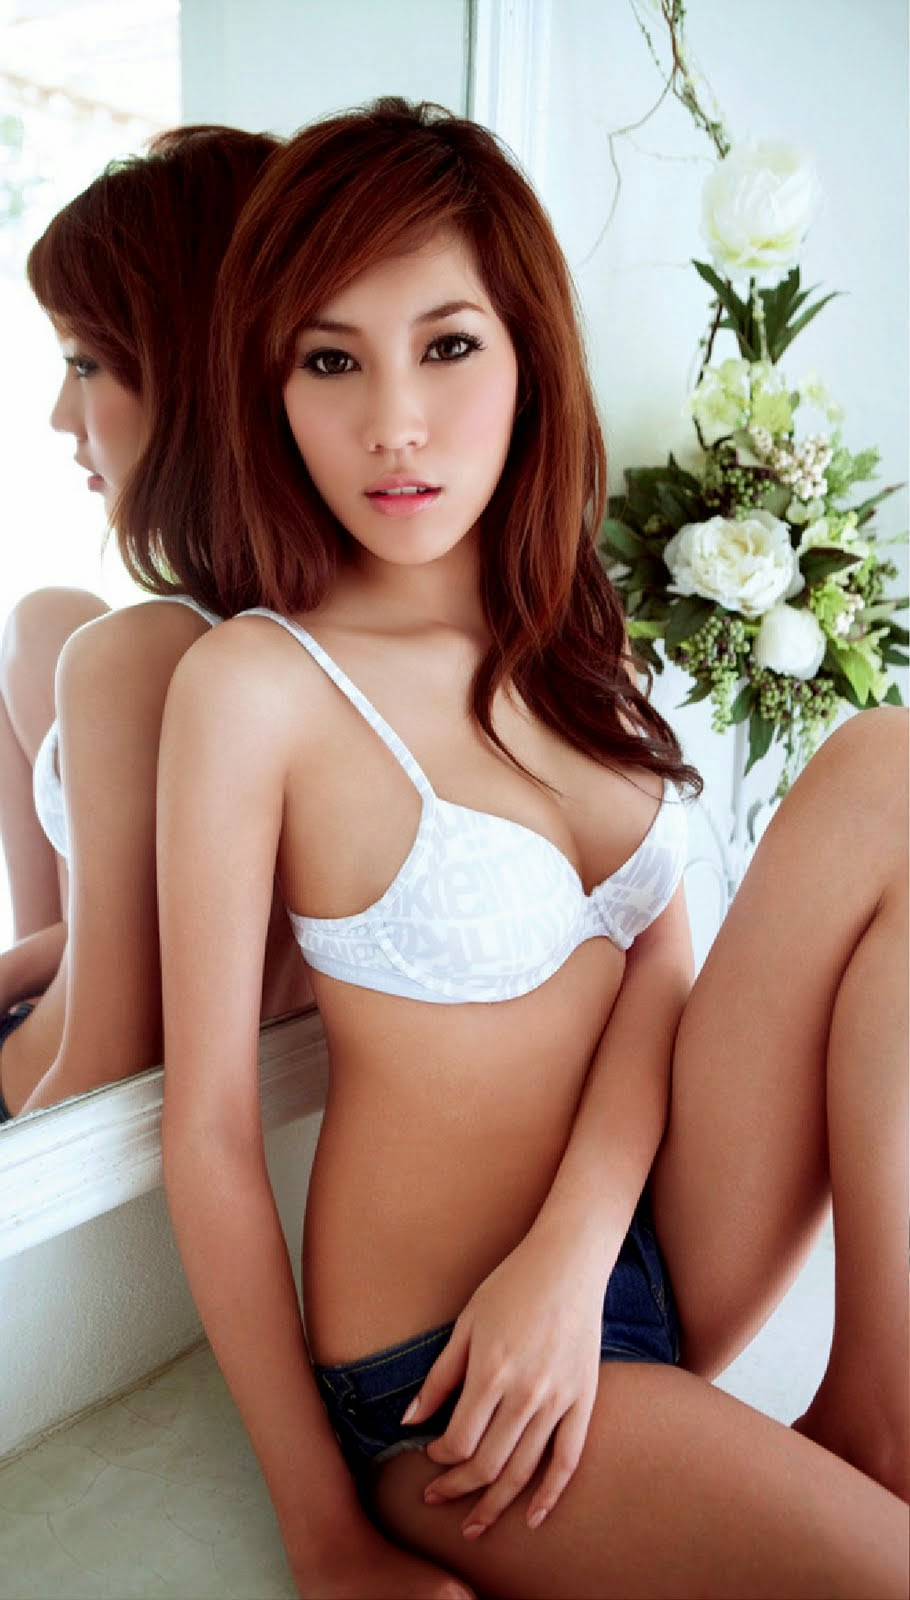 Jade seng asian american girl